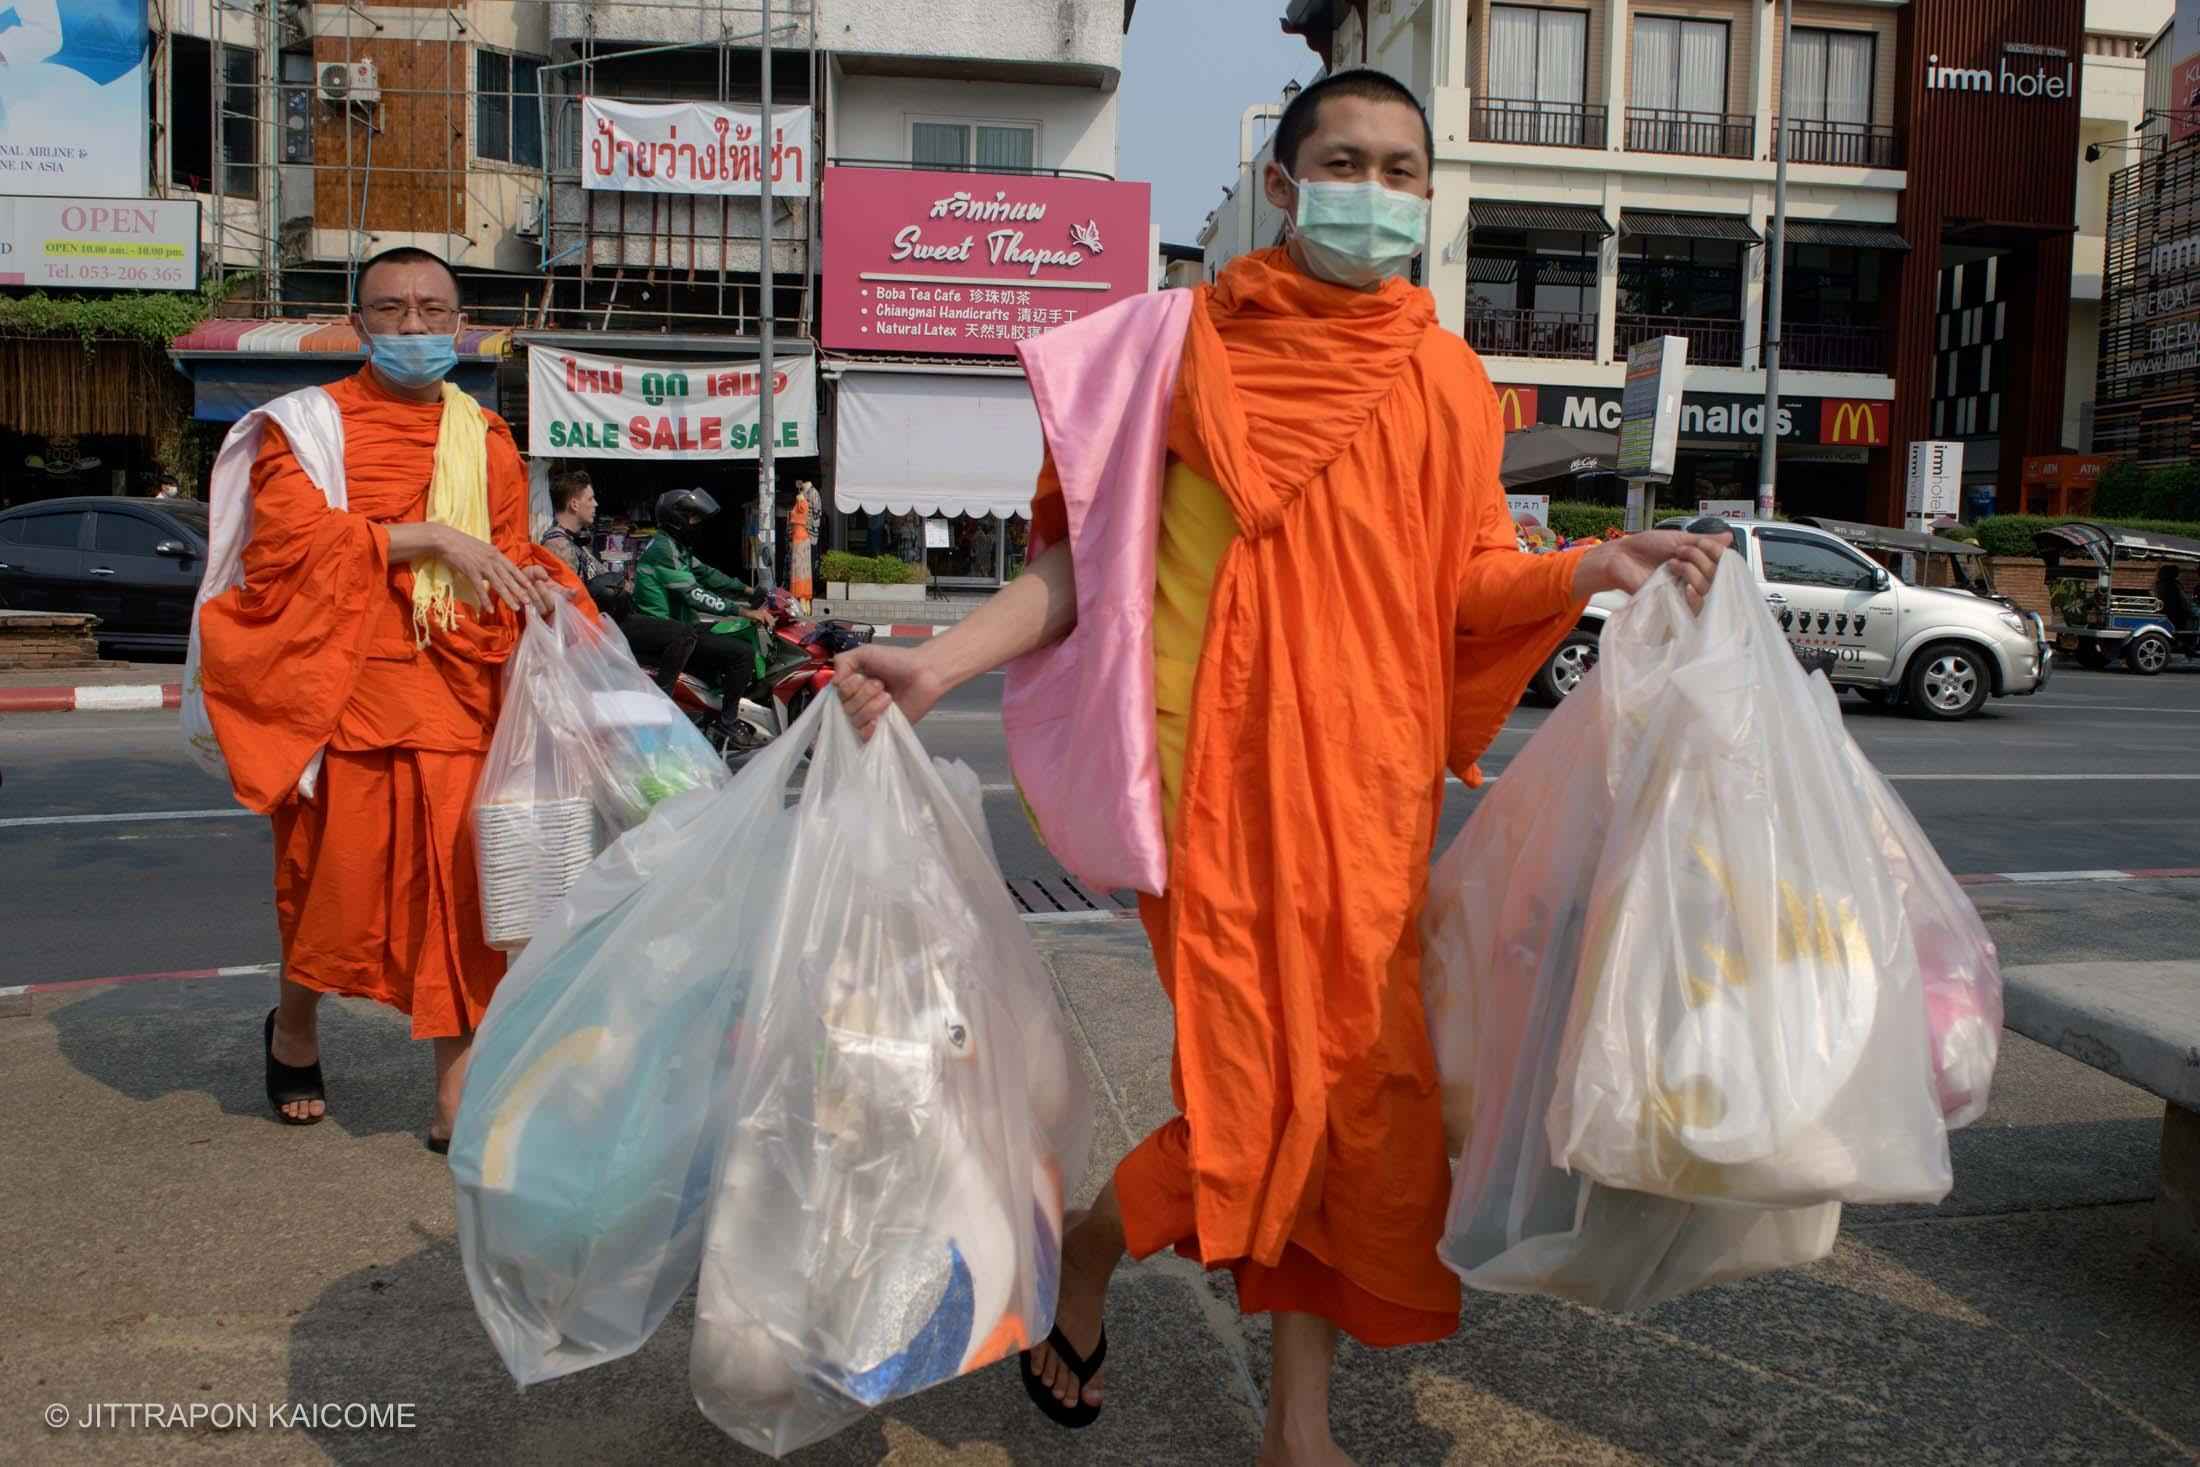 03.18 PM - Civilians are protecting themselves from the Coronavirus spreads, Chiang Mai, Thailand, on February 28, 2020.